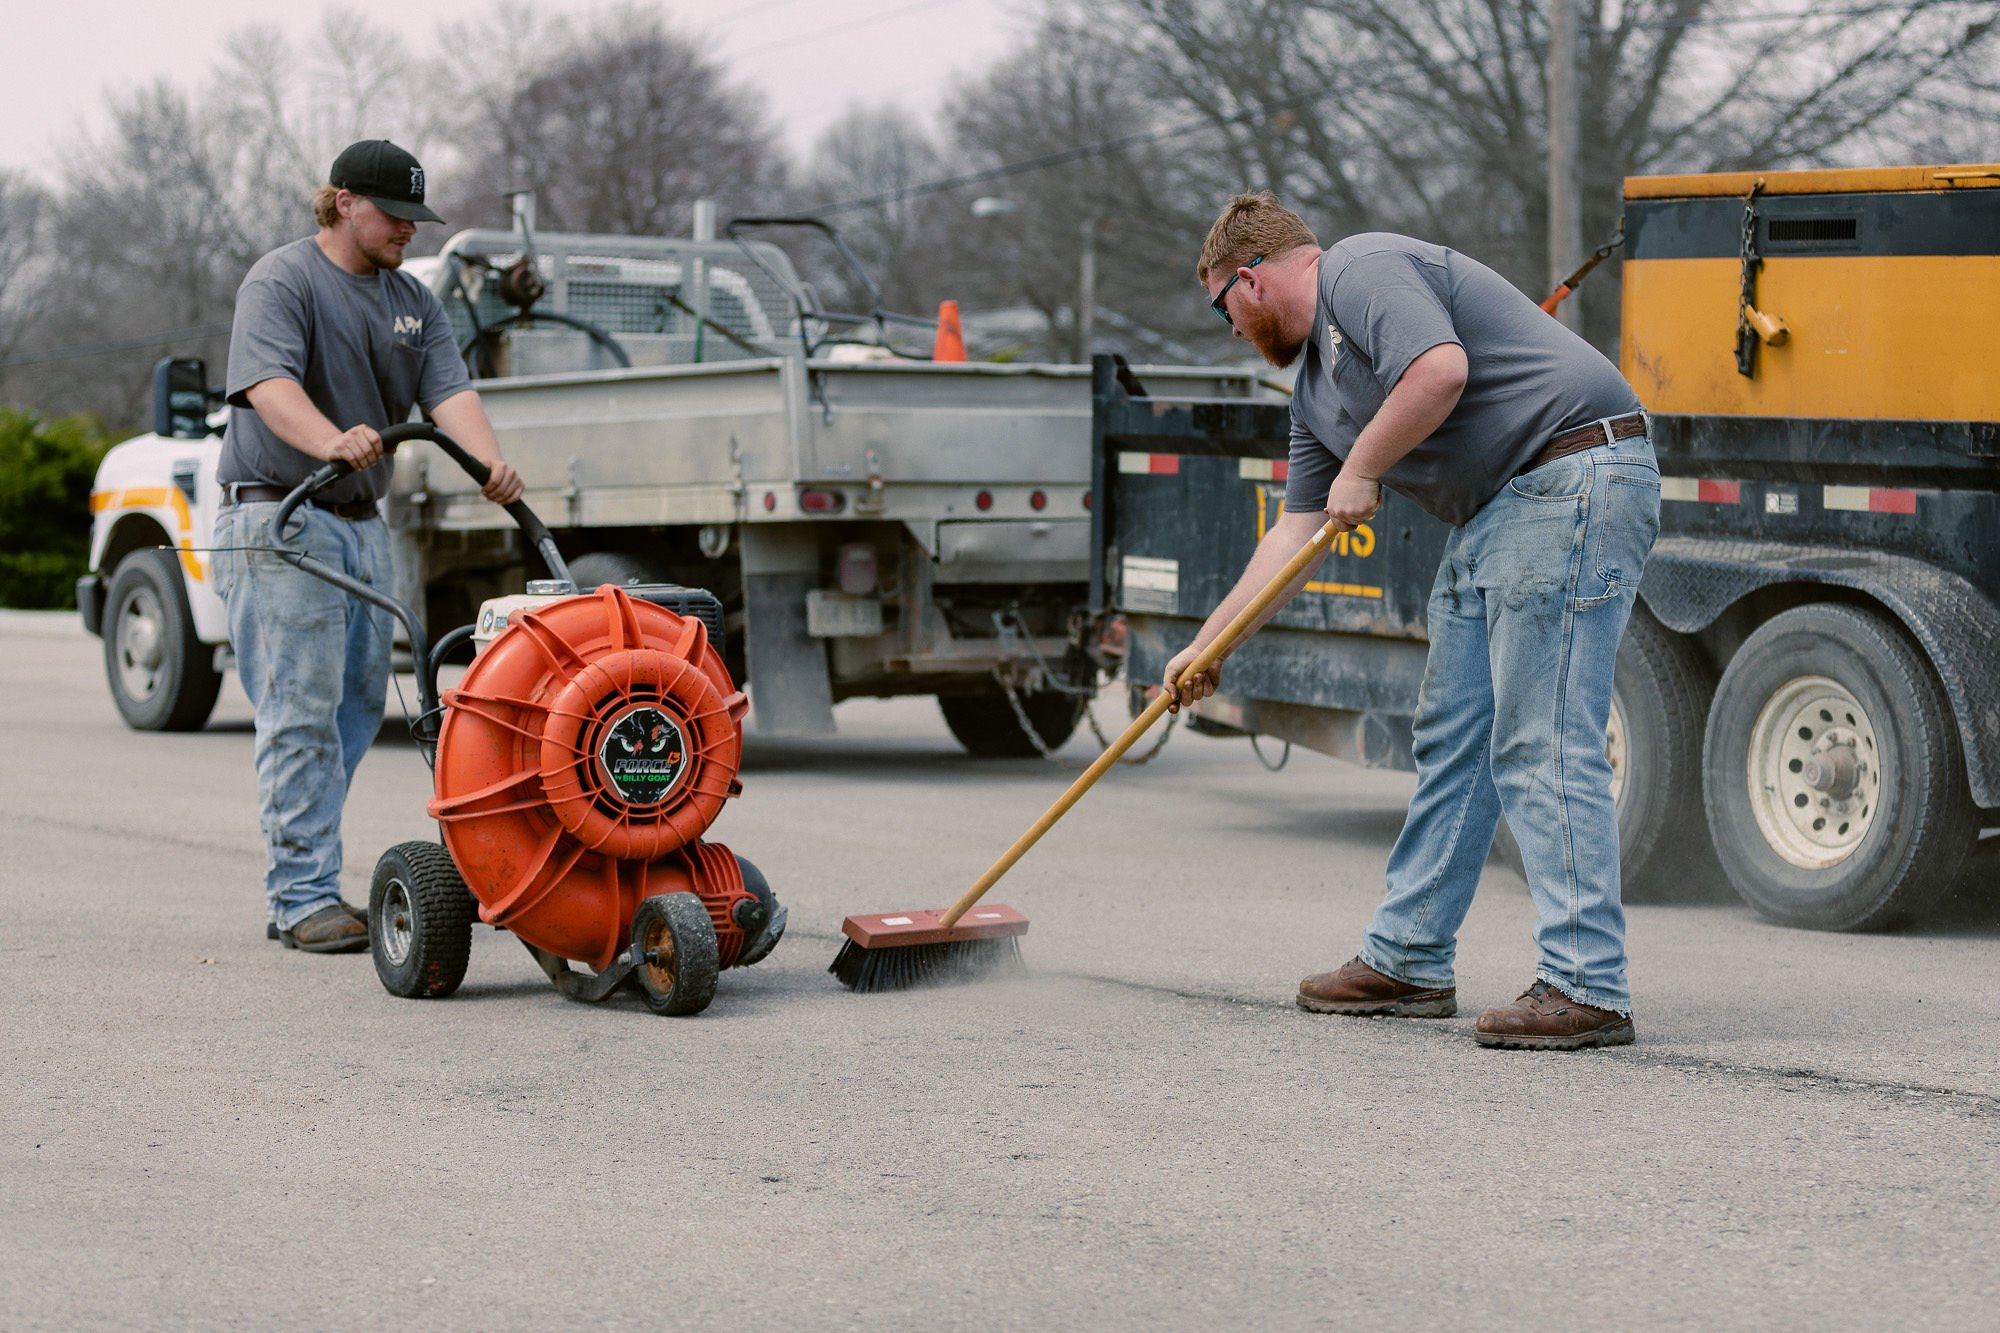 Lincoln Paving and Asphalt Repair apms 0796 - America's Pavement Maintenance Specialist | Lincoln, Nebraska